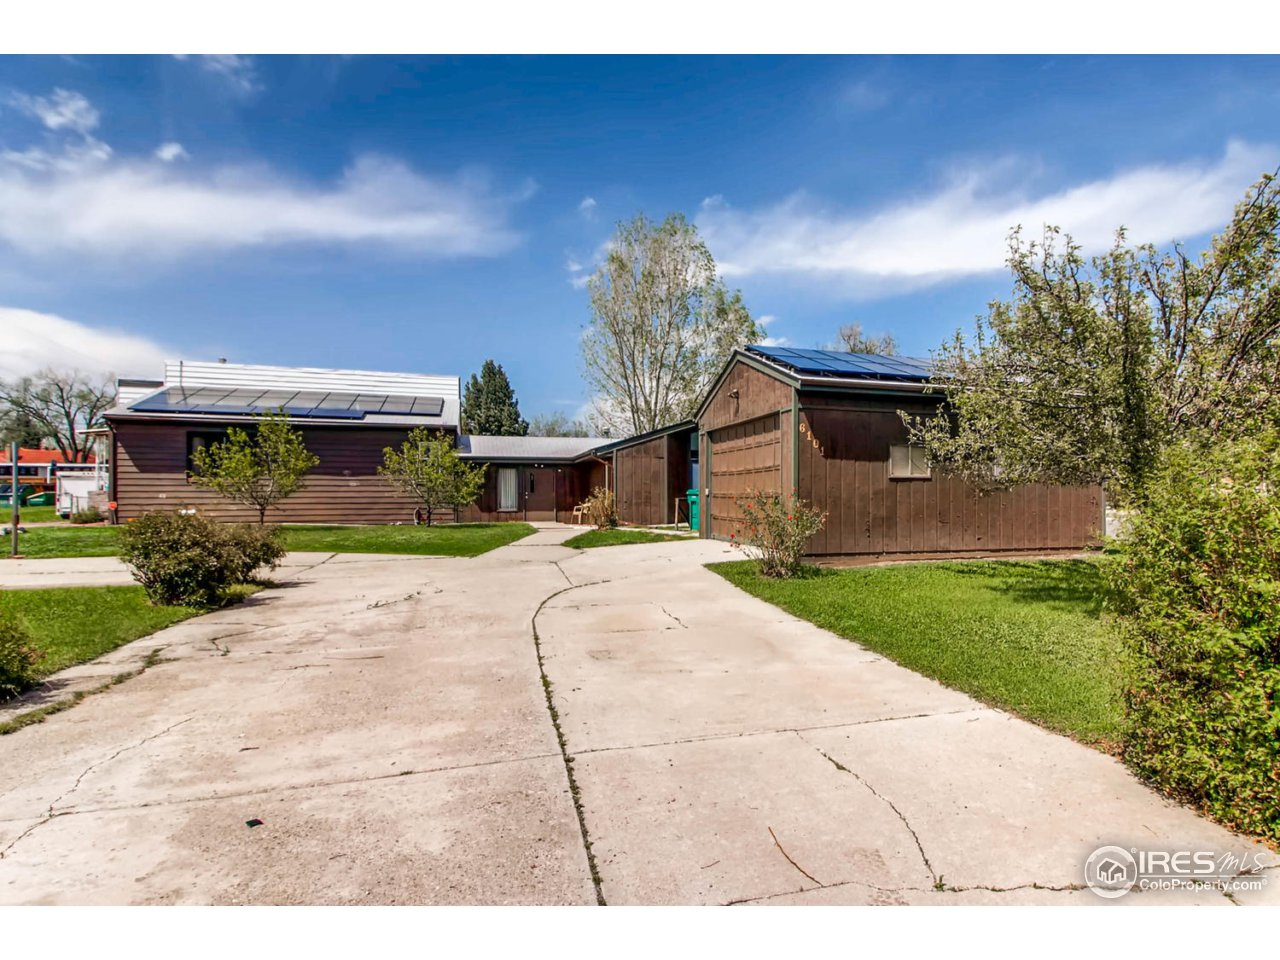 6101 W 60th Ave, Arvada, CO 80003